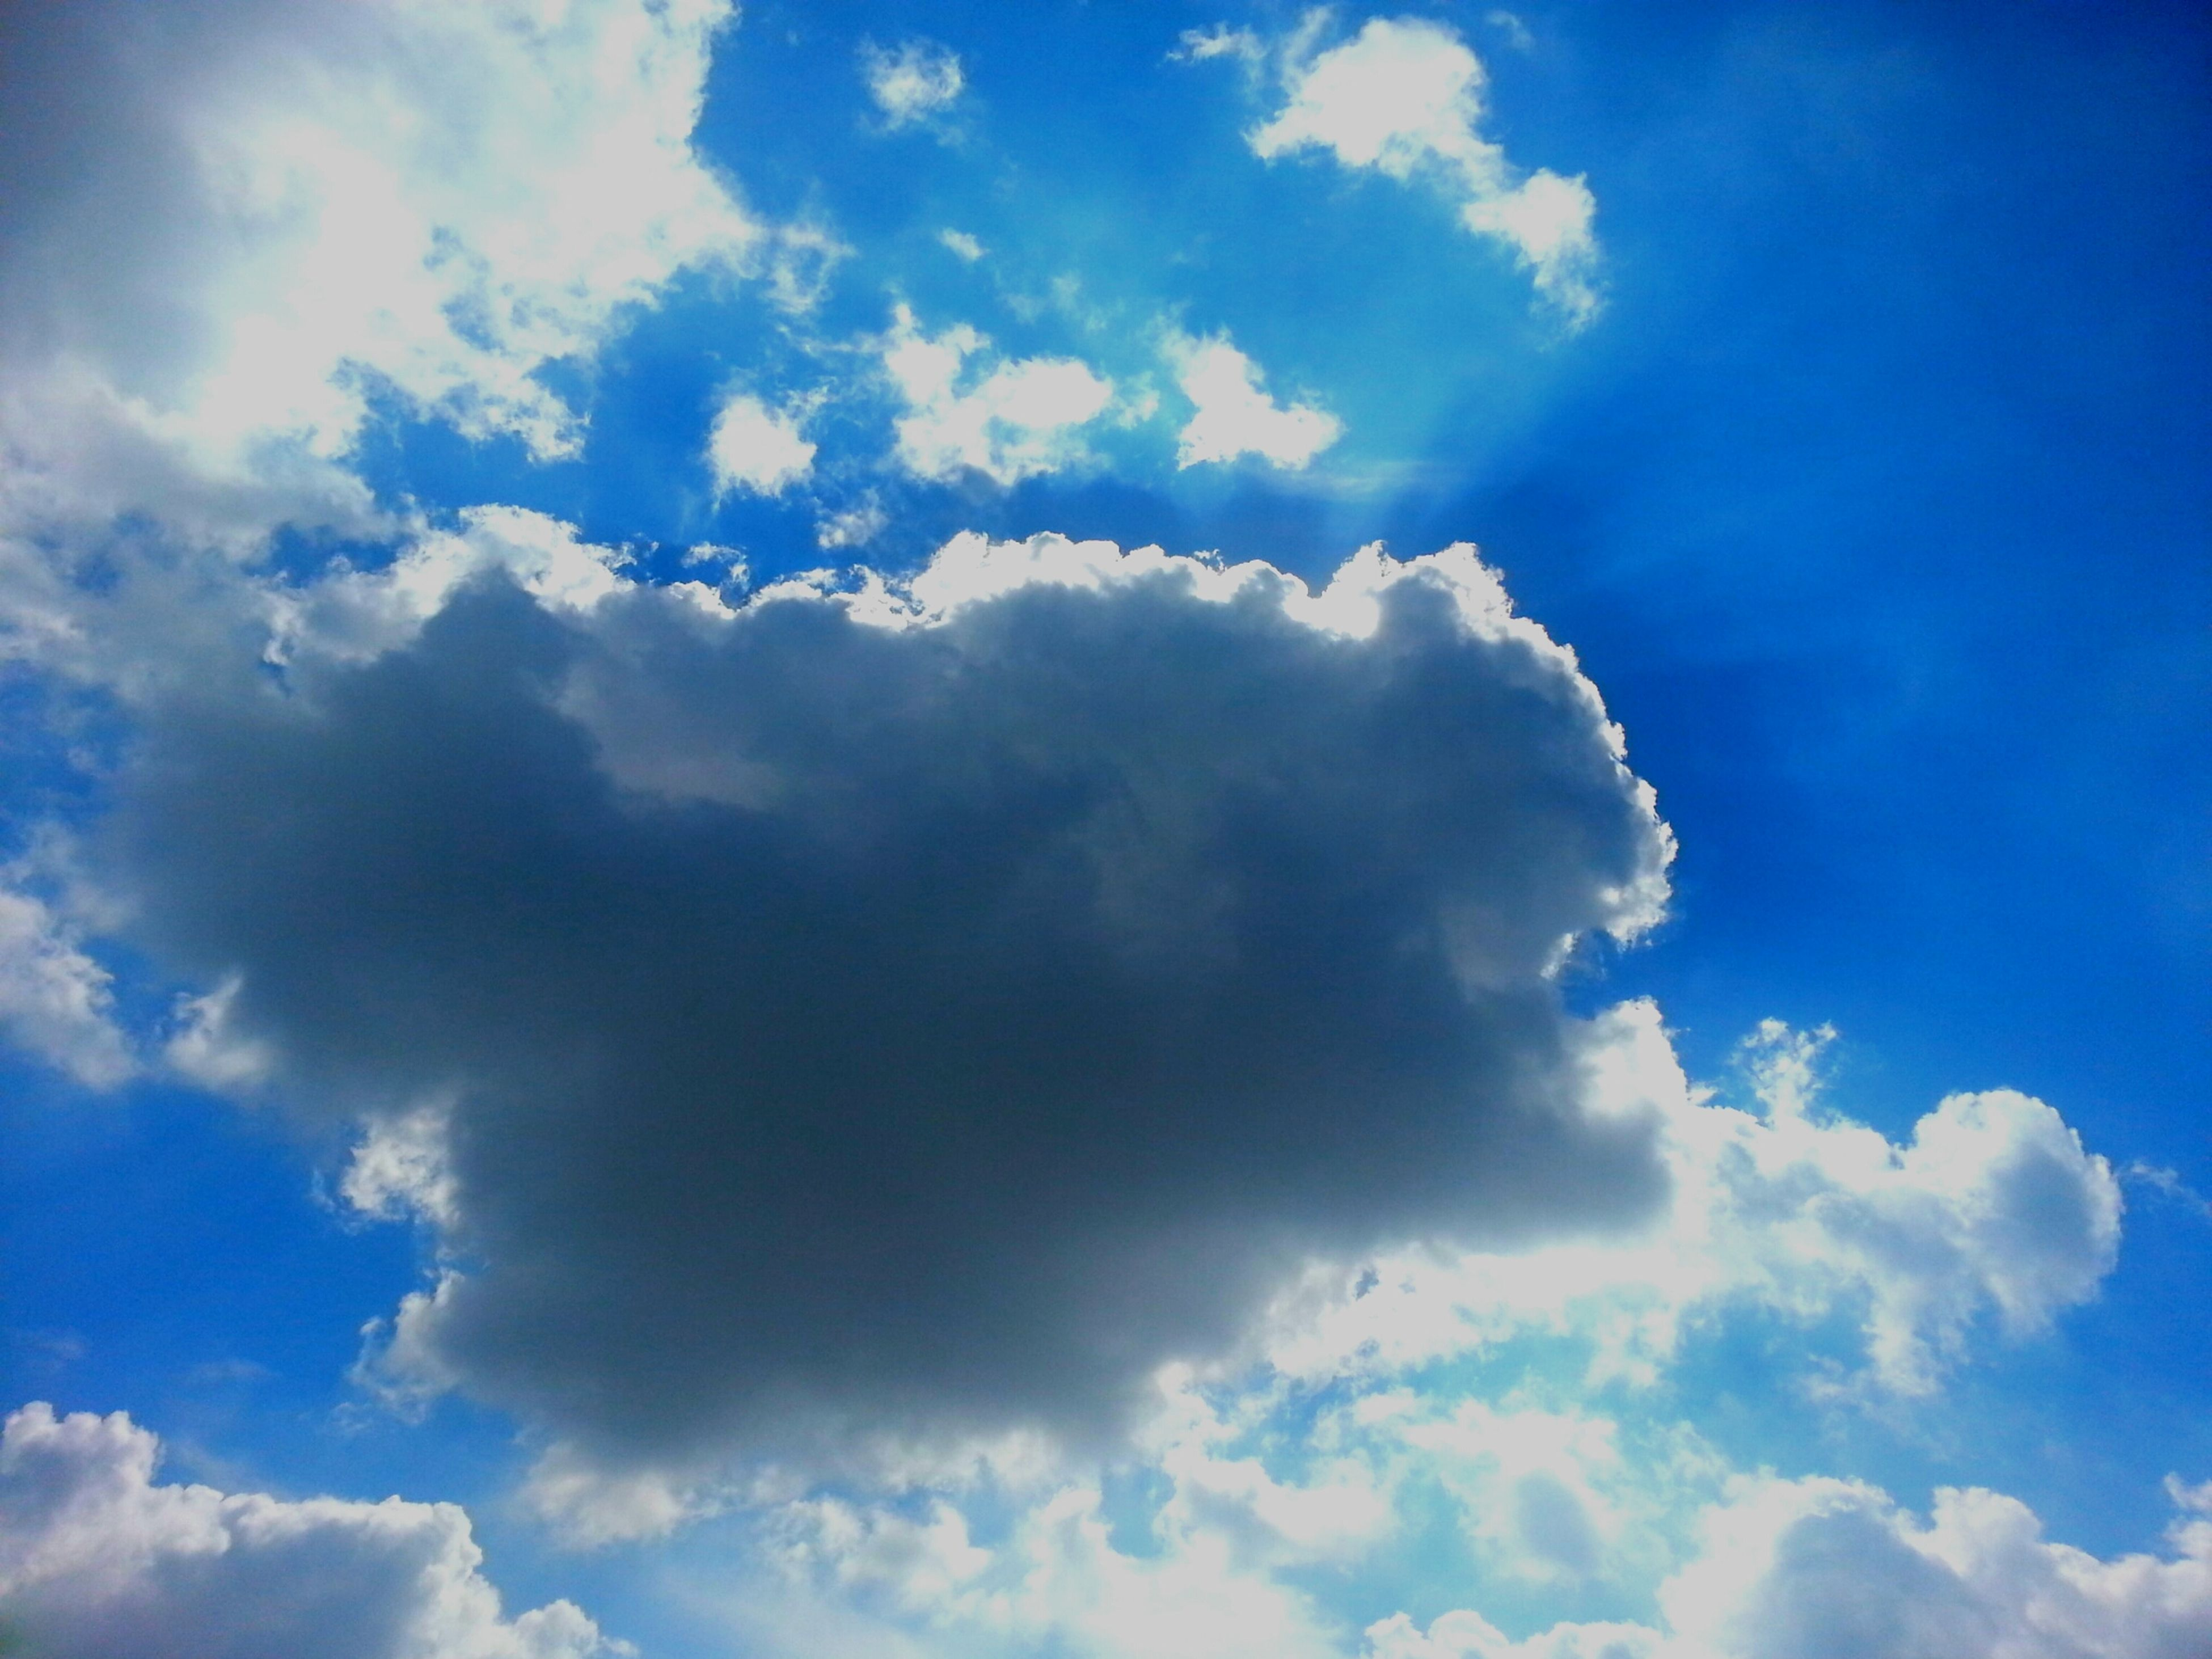 sky, blue, low angle view, cloud - sky, beauty in nature, sky only, tranquility, scenics, nature, cloudy, cloudscape, cloud, tranquil scene, backgrounds, idyllic, white color, outdoors, day, fluffy, no people